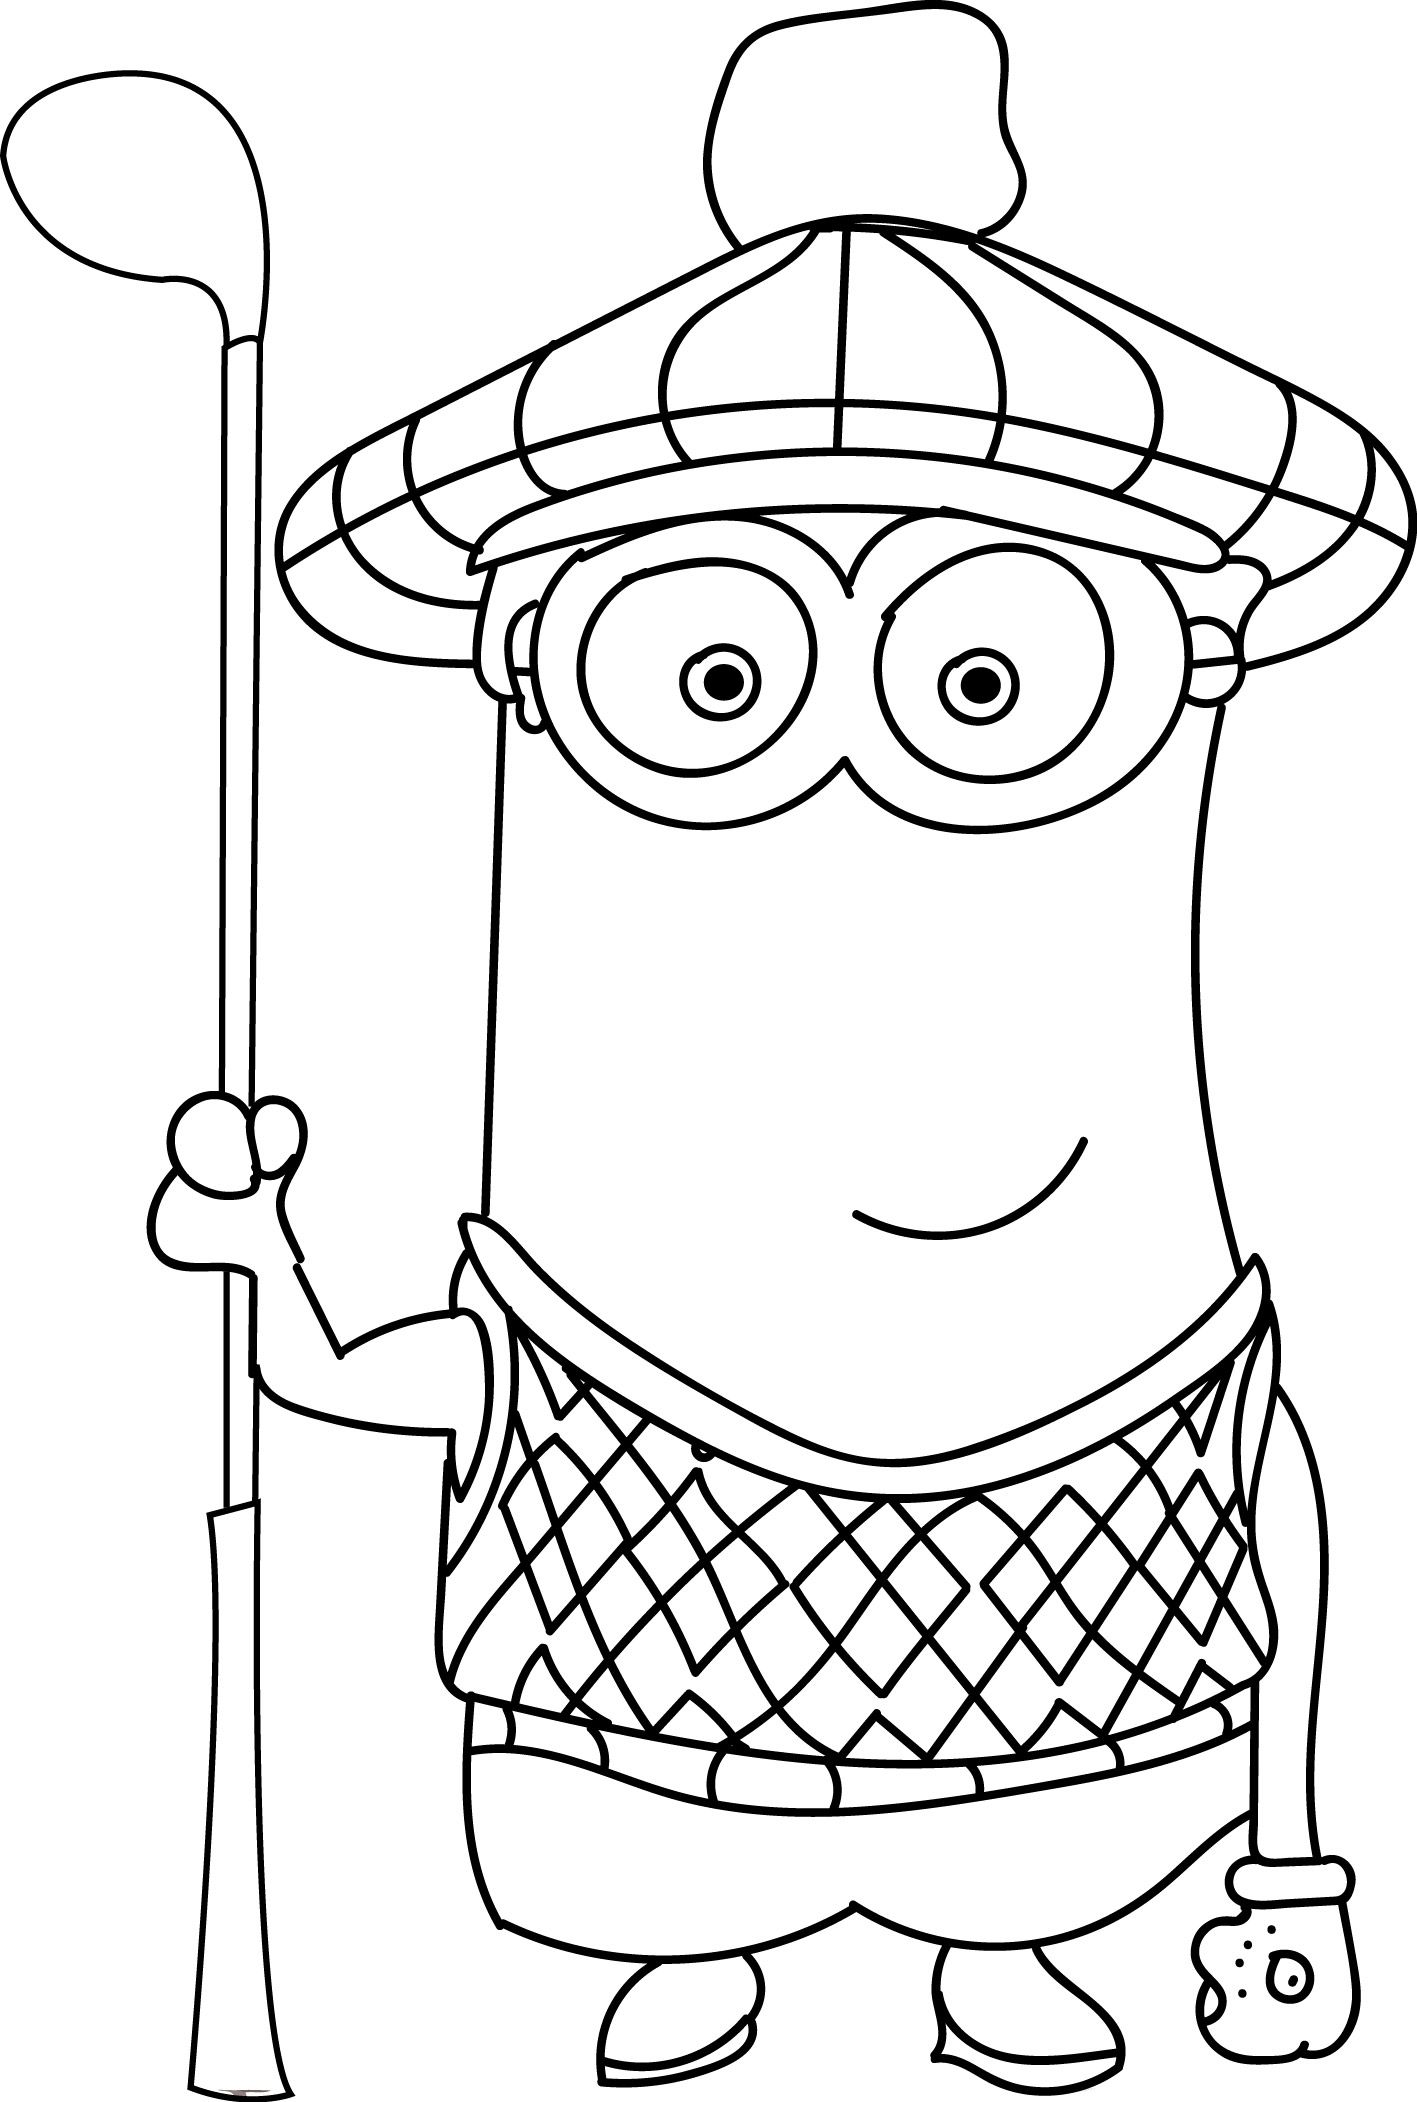 minion golf coloring page kevin playing golf coloring page kevin are feeling very minion page golf coloring